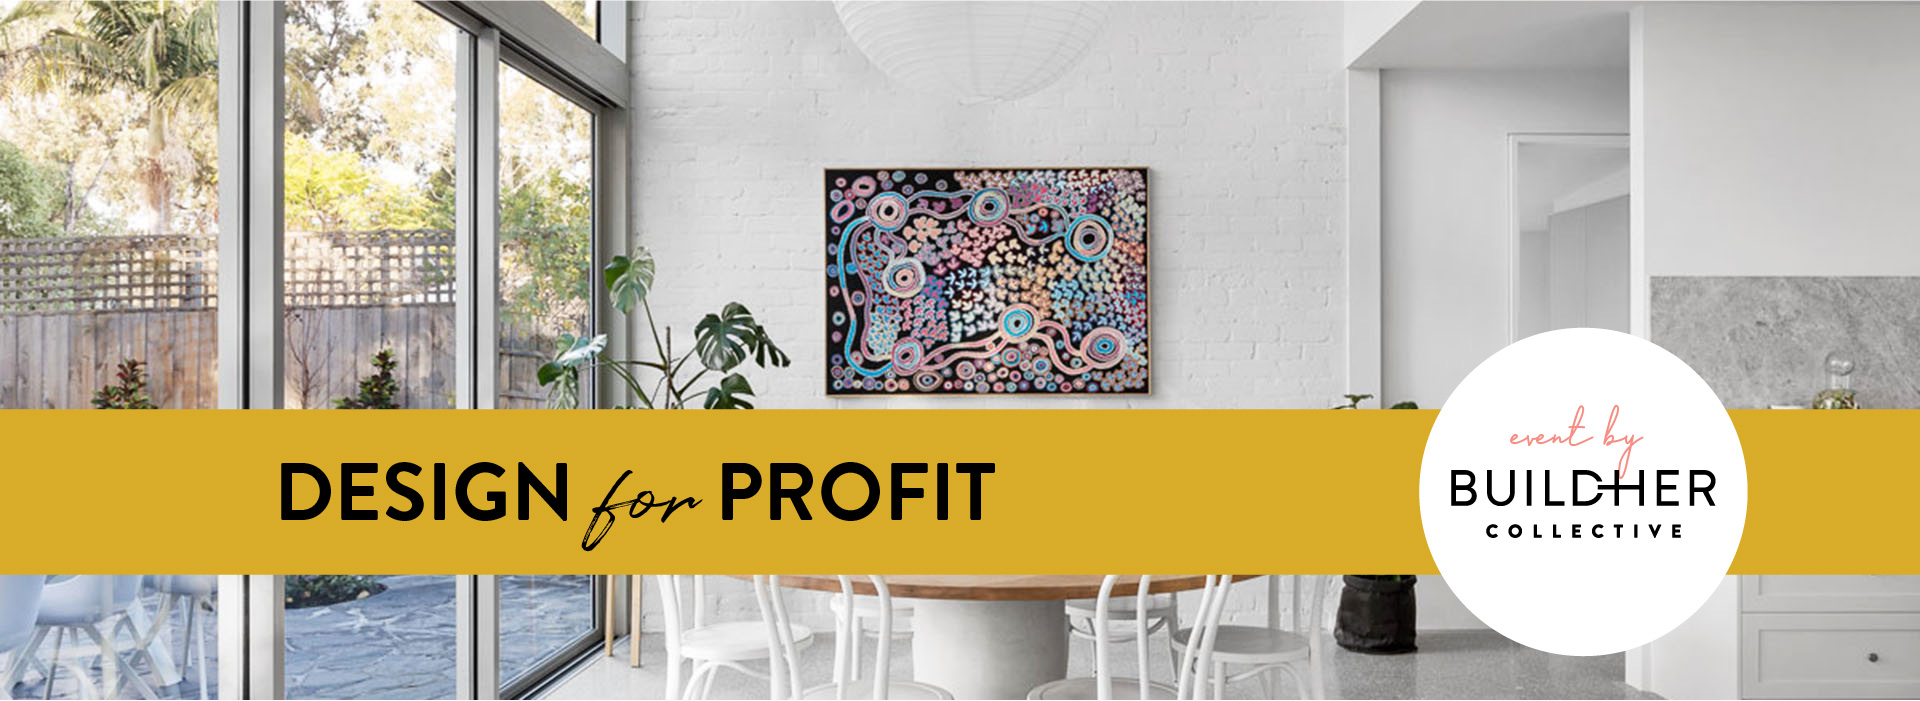 Design for Profit-Event Banner 29 June